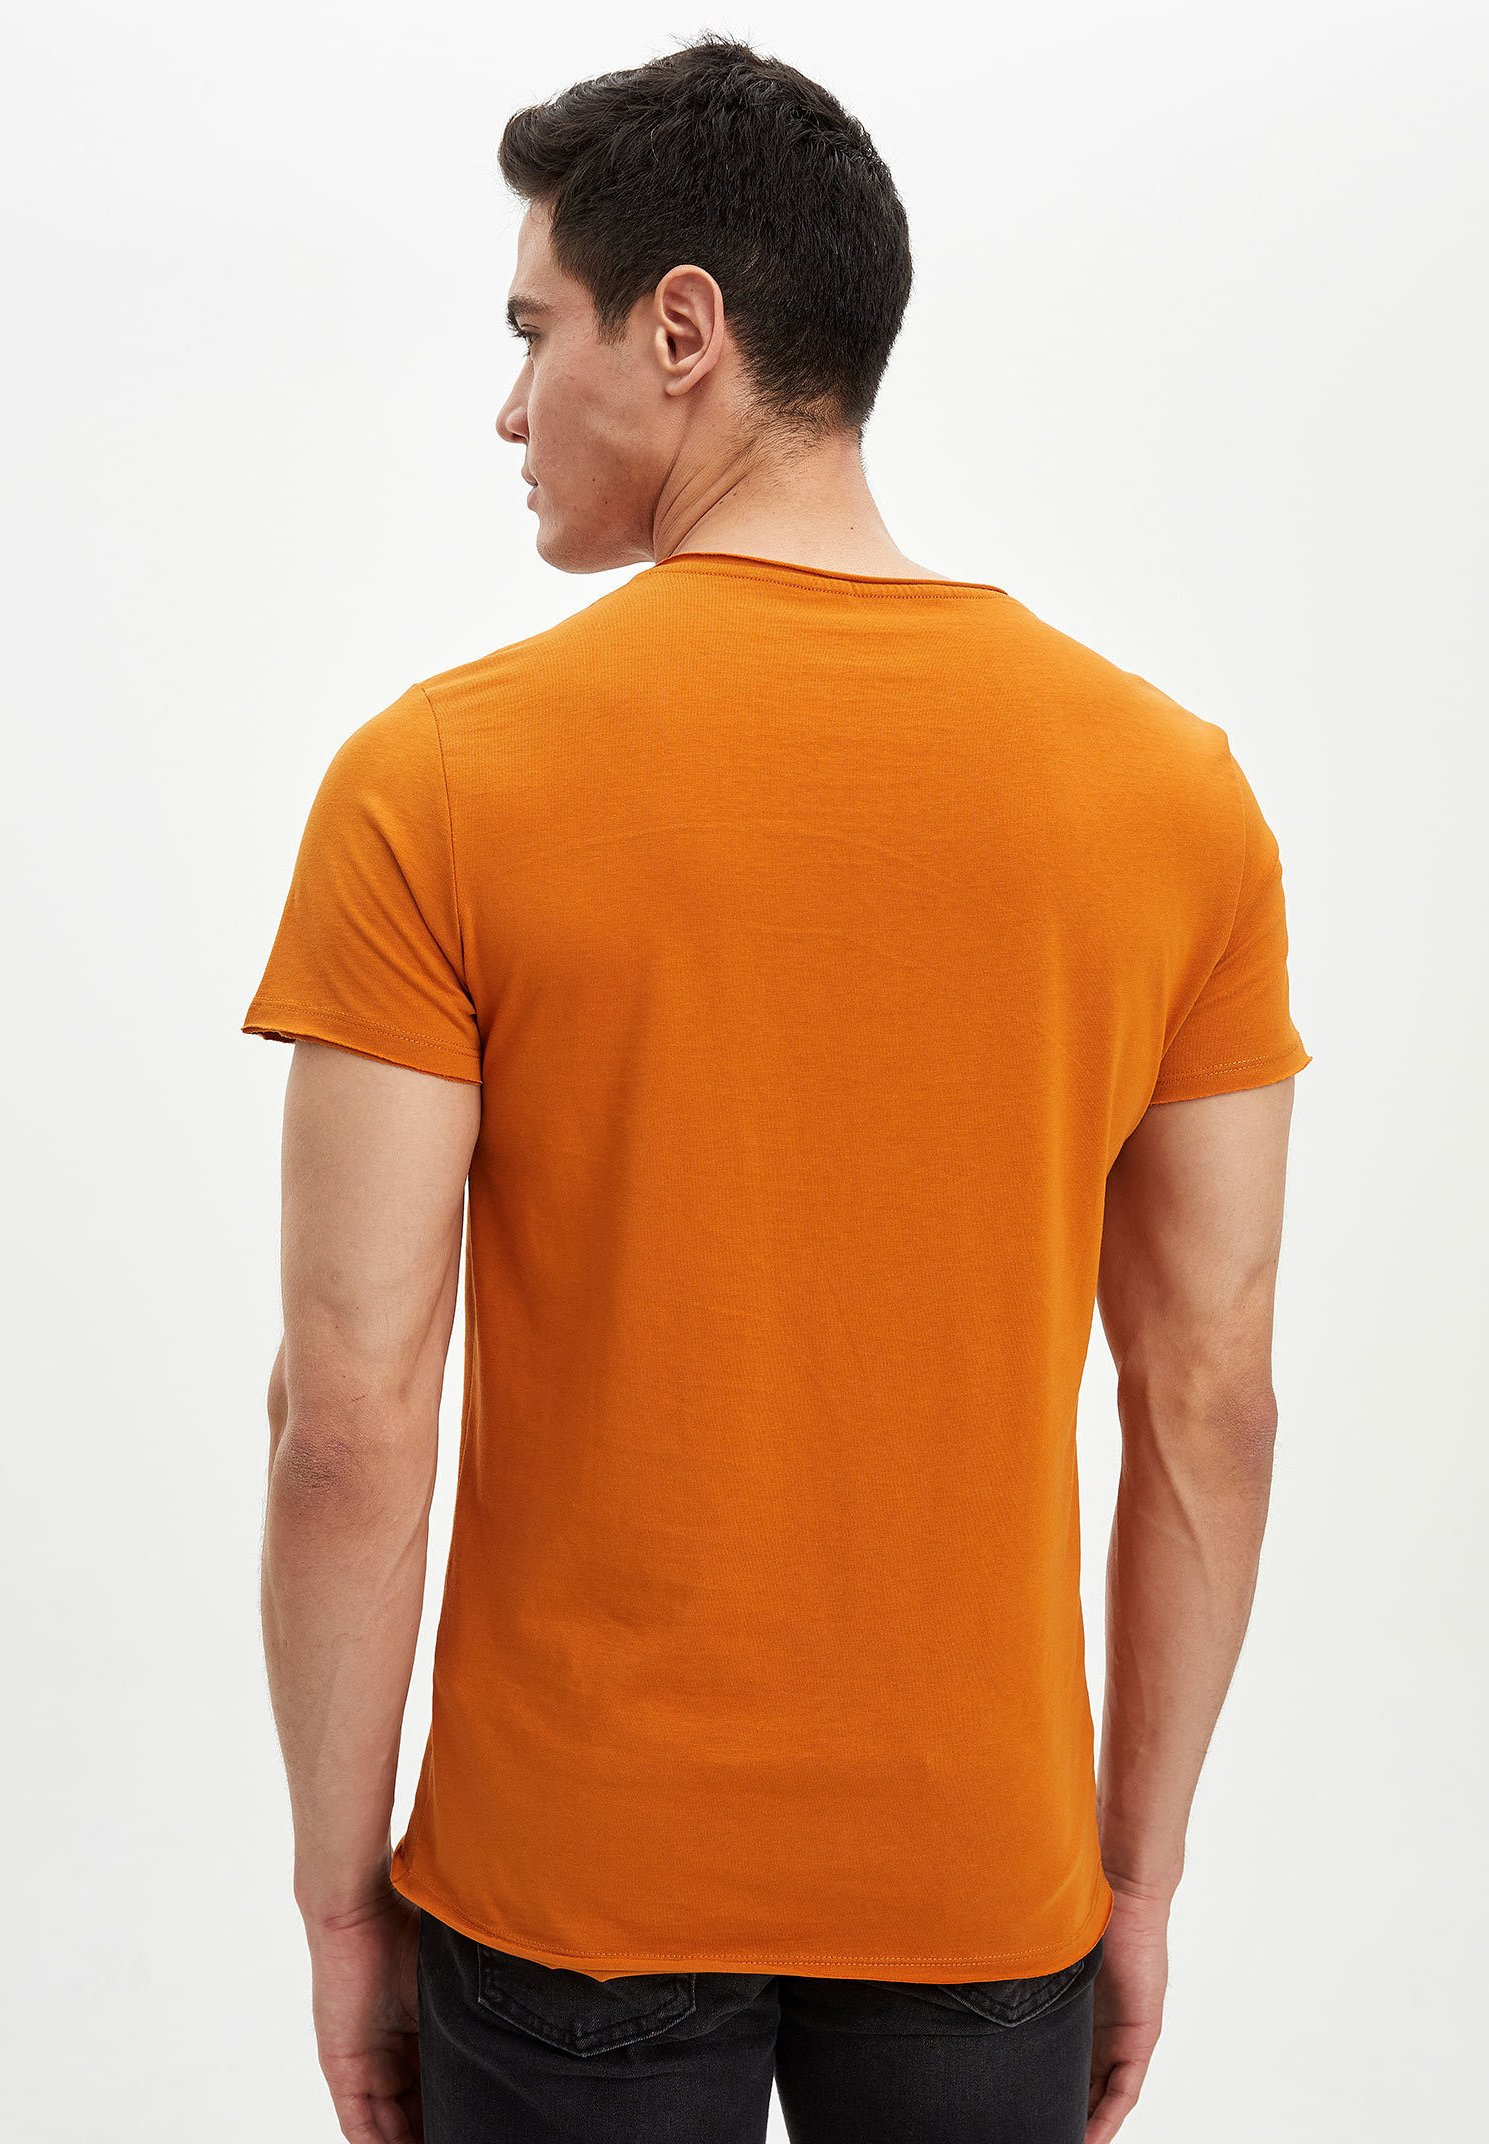 DeFacto Print T-shirt - orange grX9m